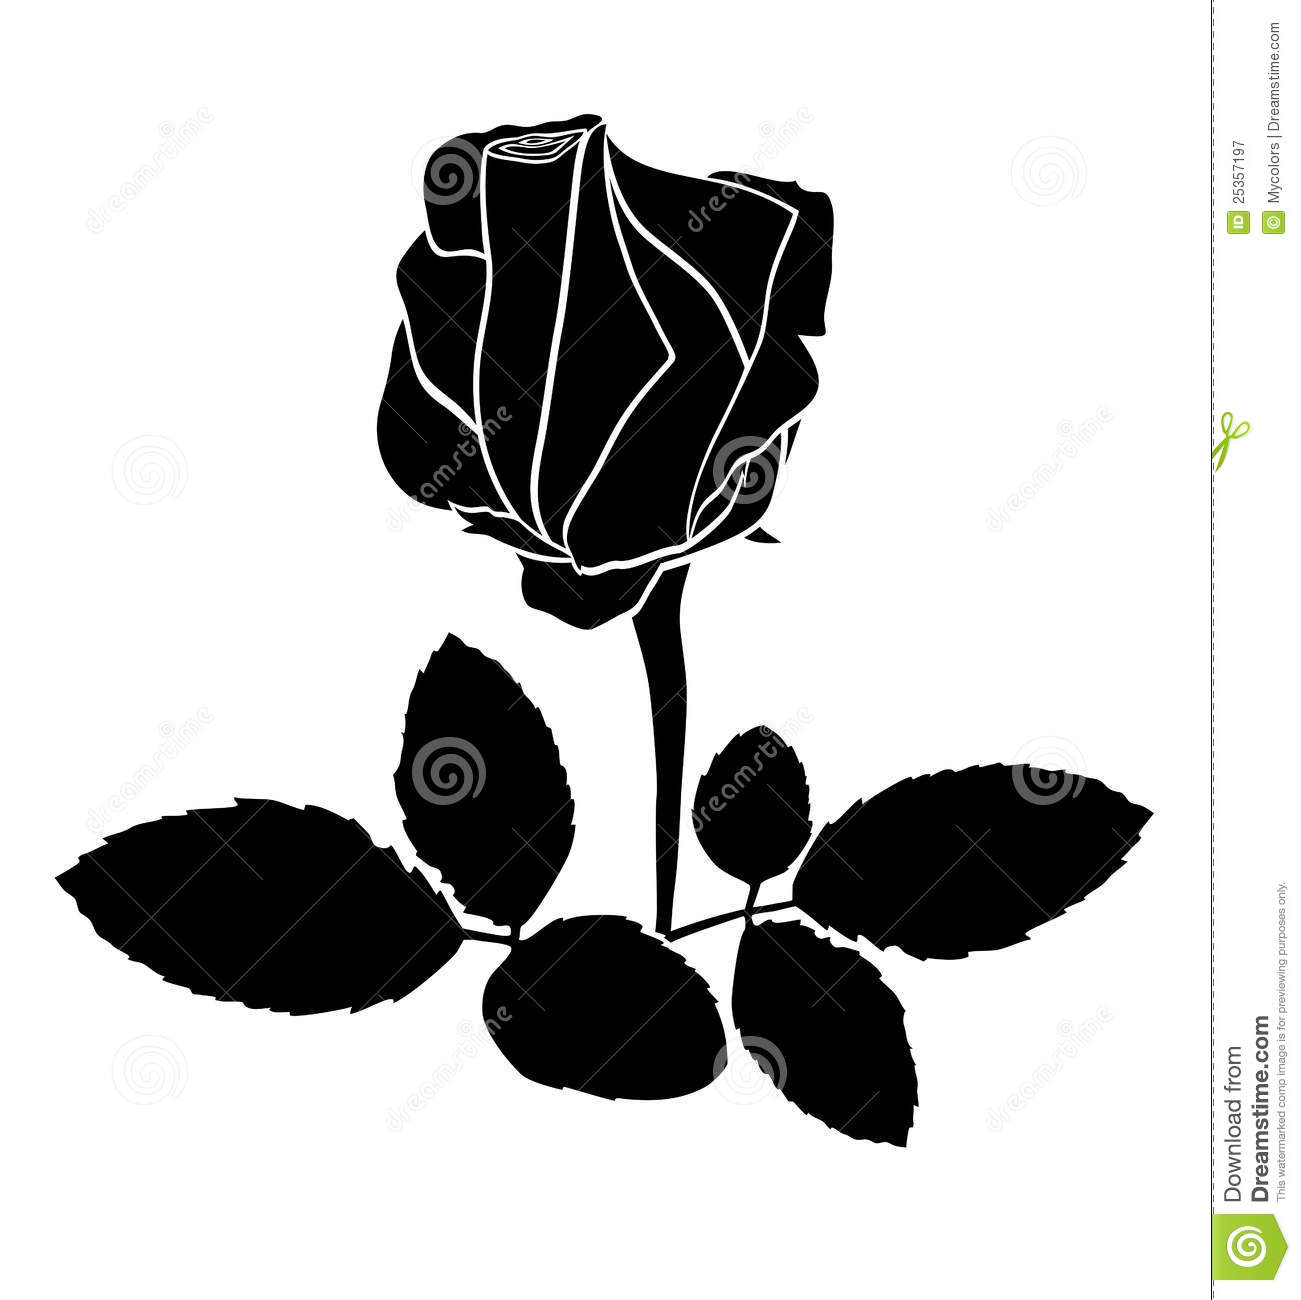 14 Black Rose Vector Images - Vector Clip Art Black and ...